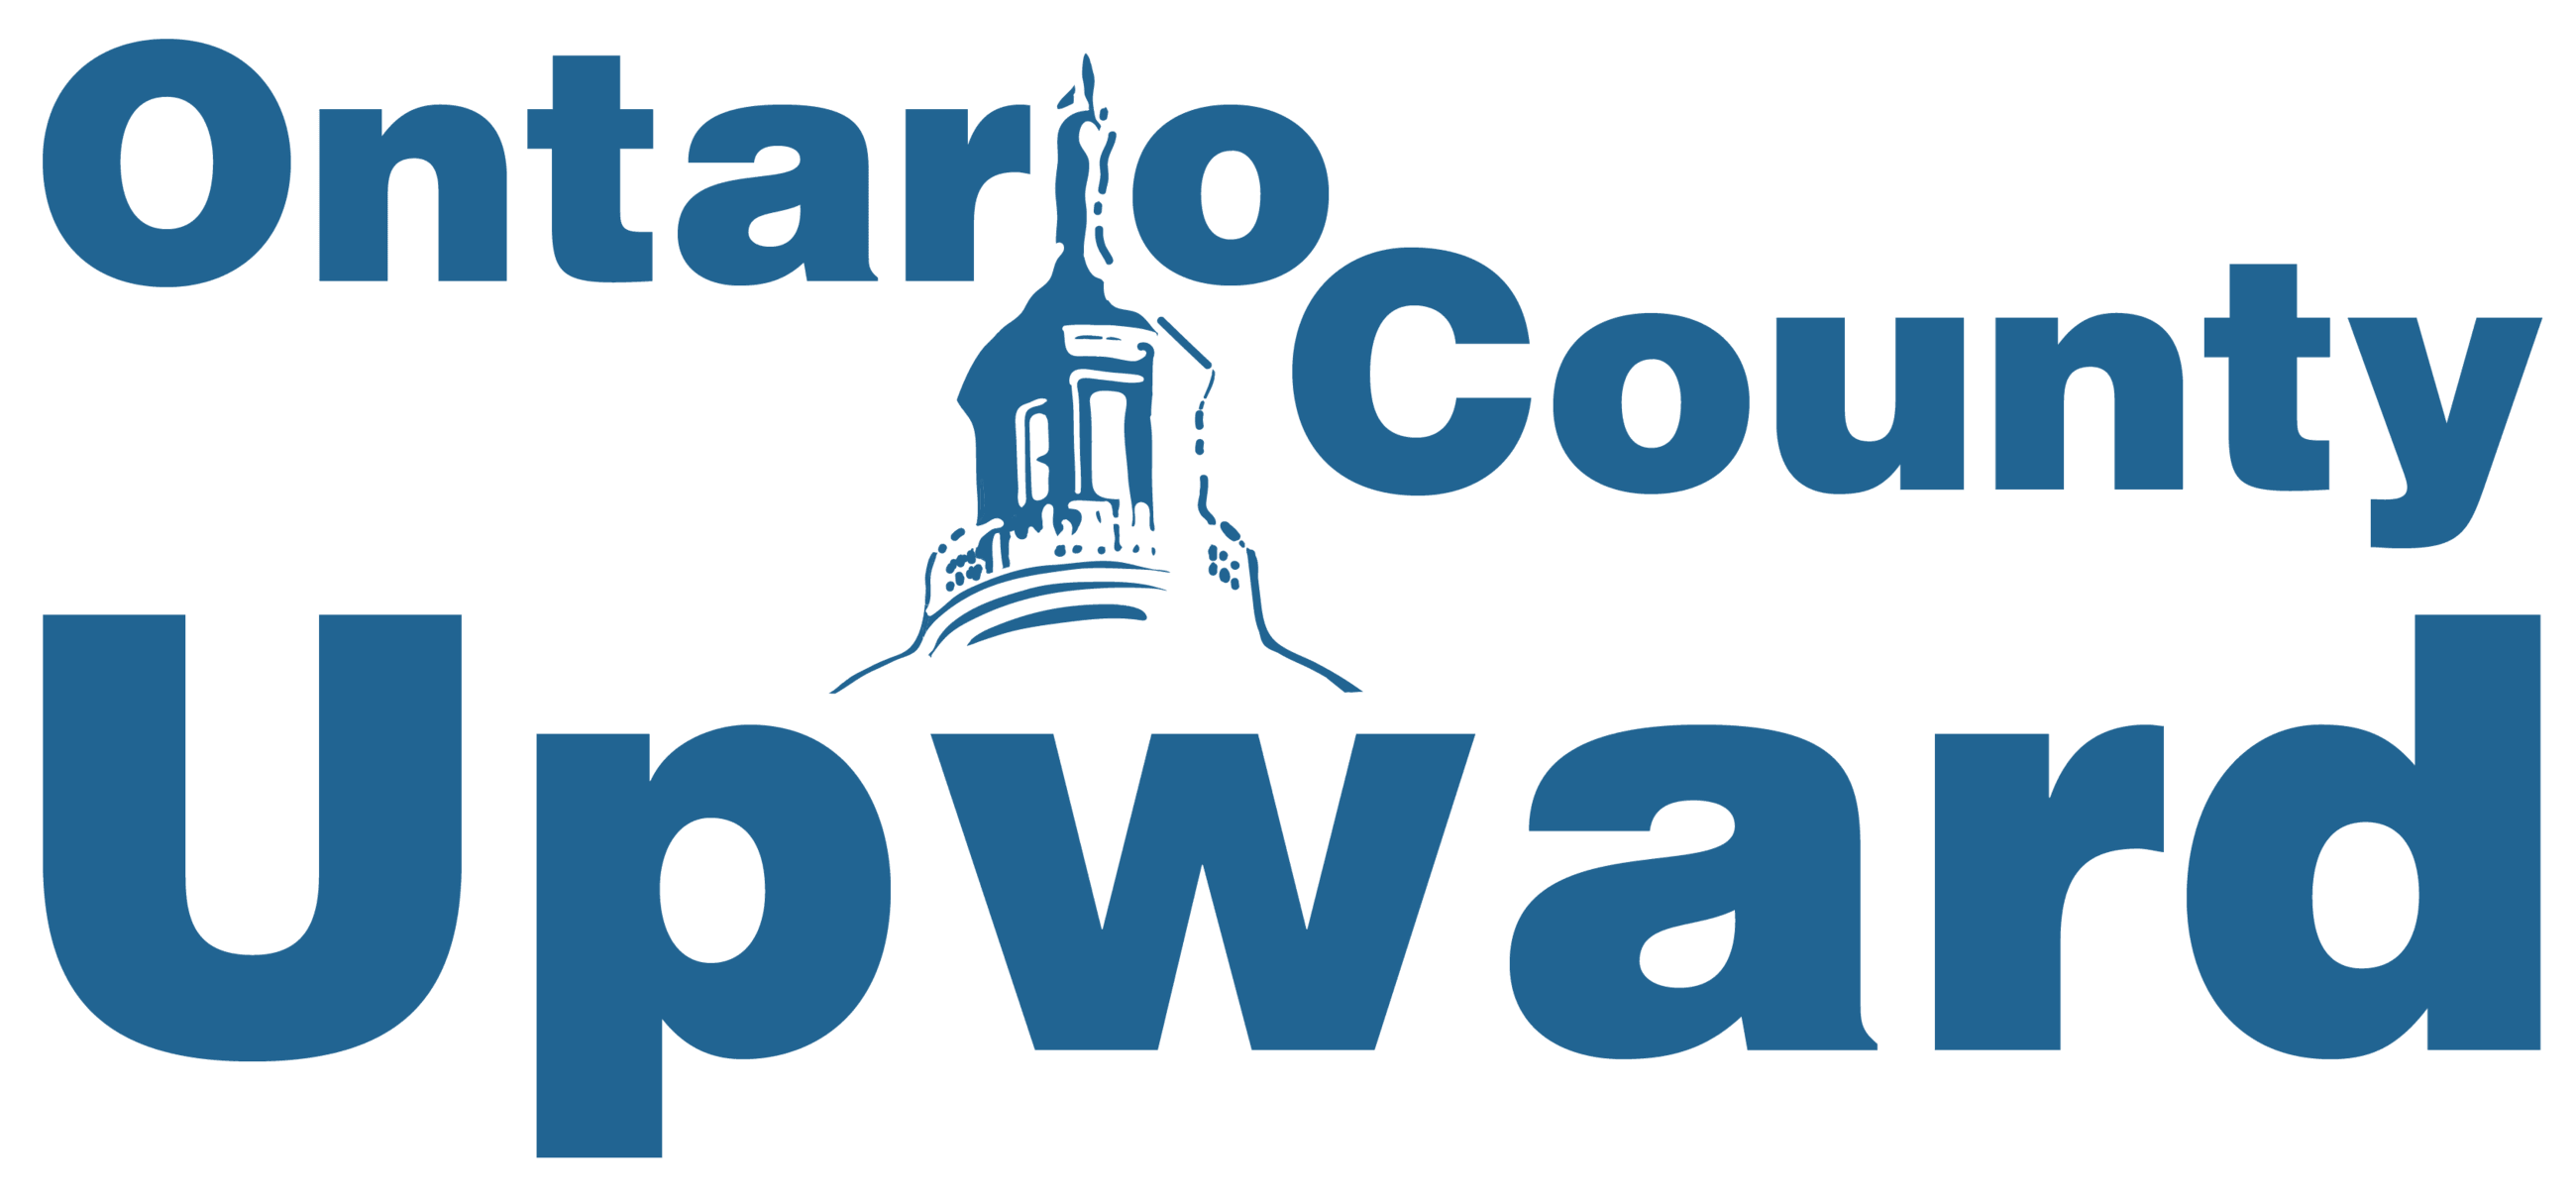 ontario county upward logo dark blue (003)